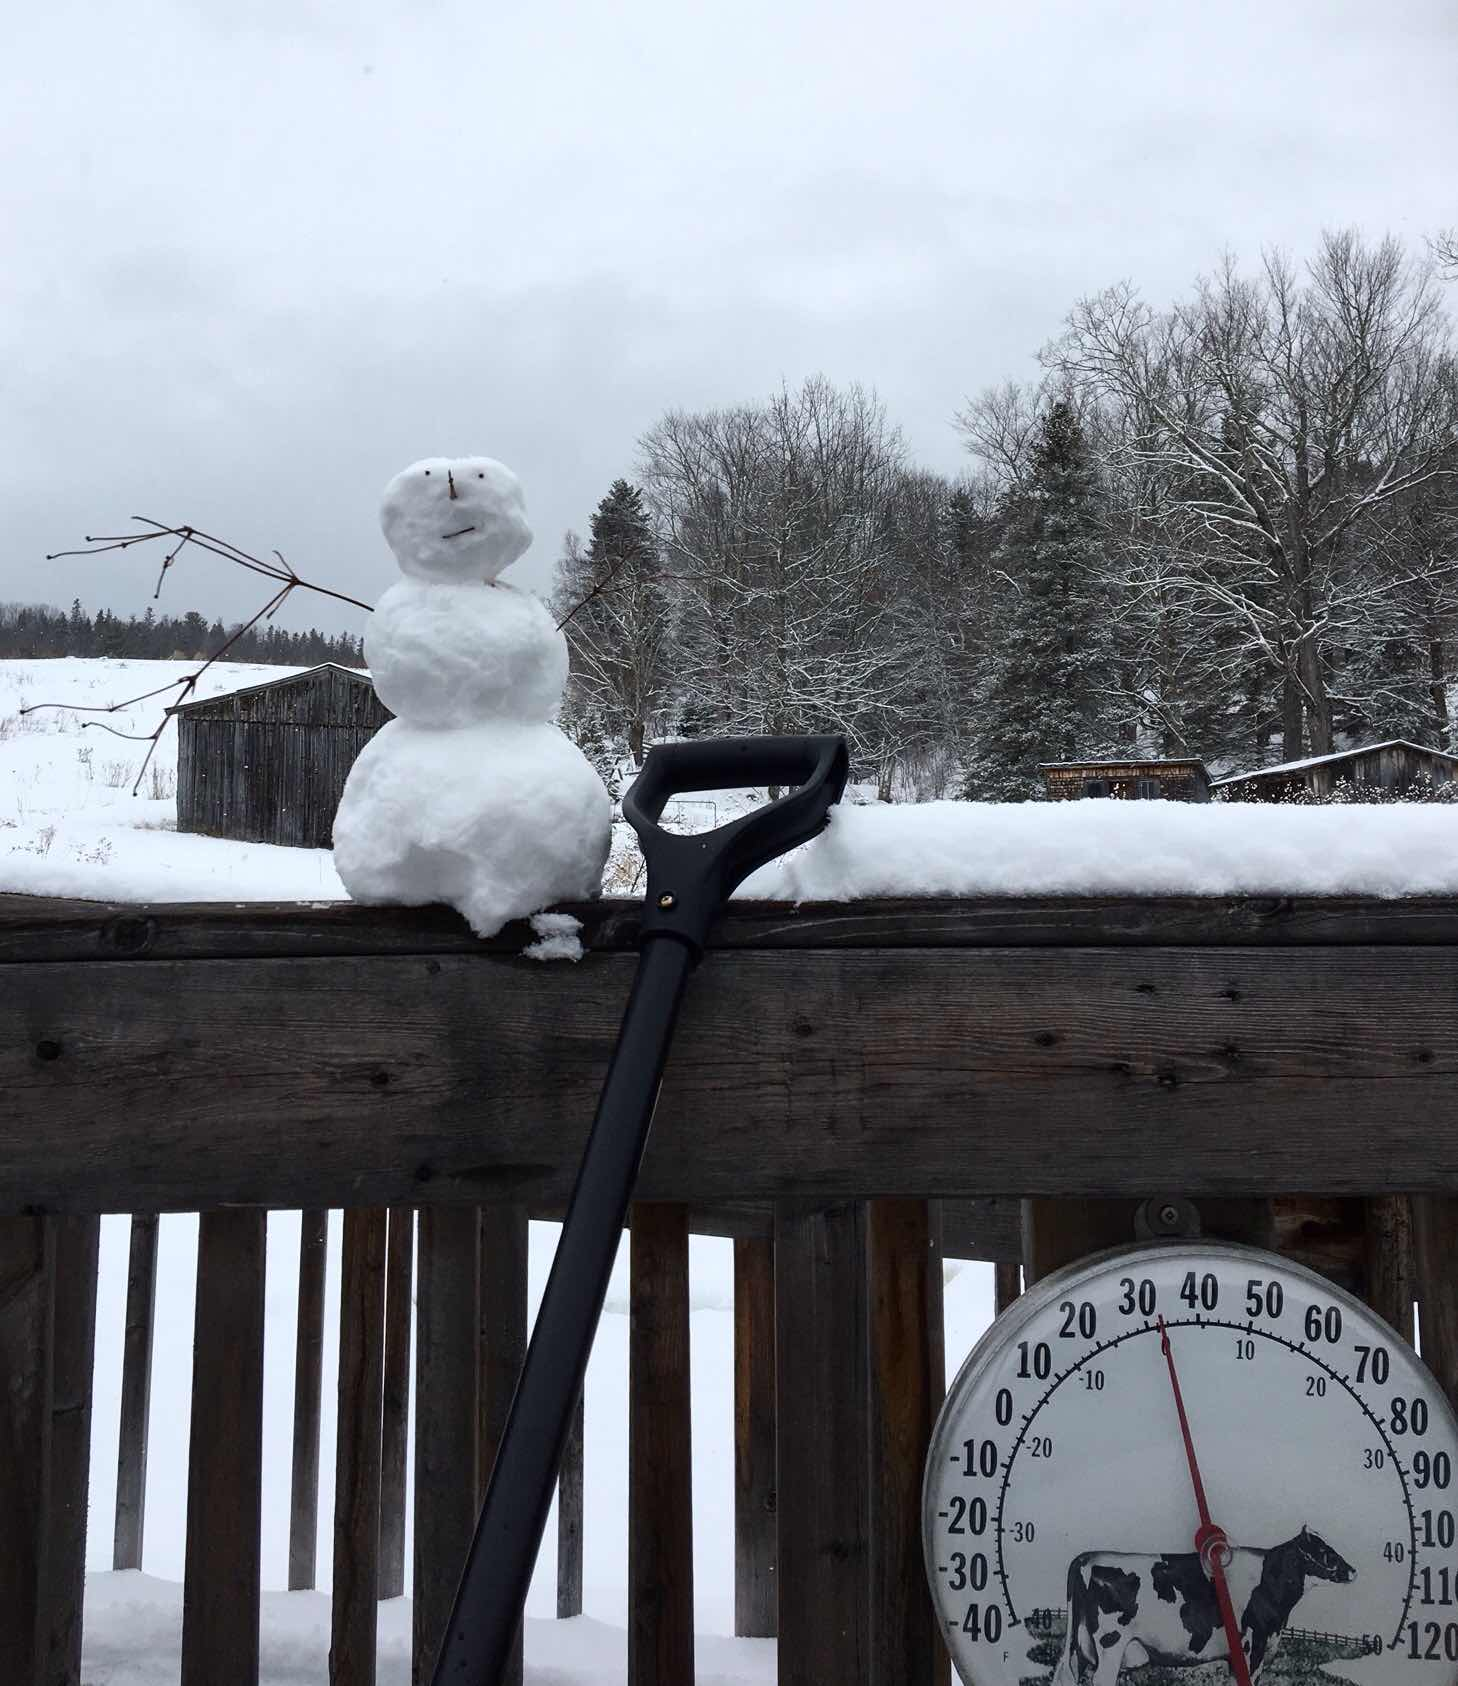 tiny snowman on the railing of a deck with snowy fields behind